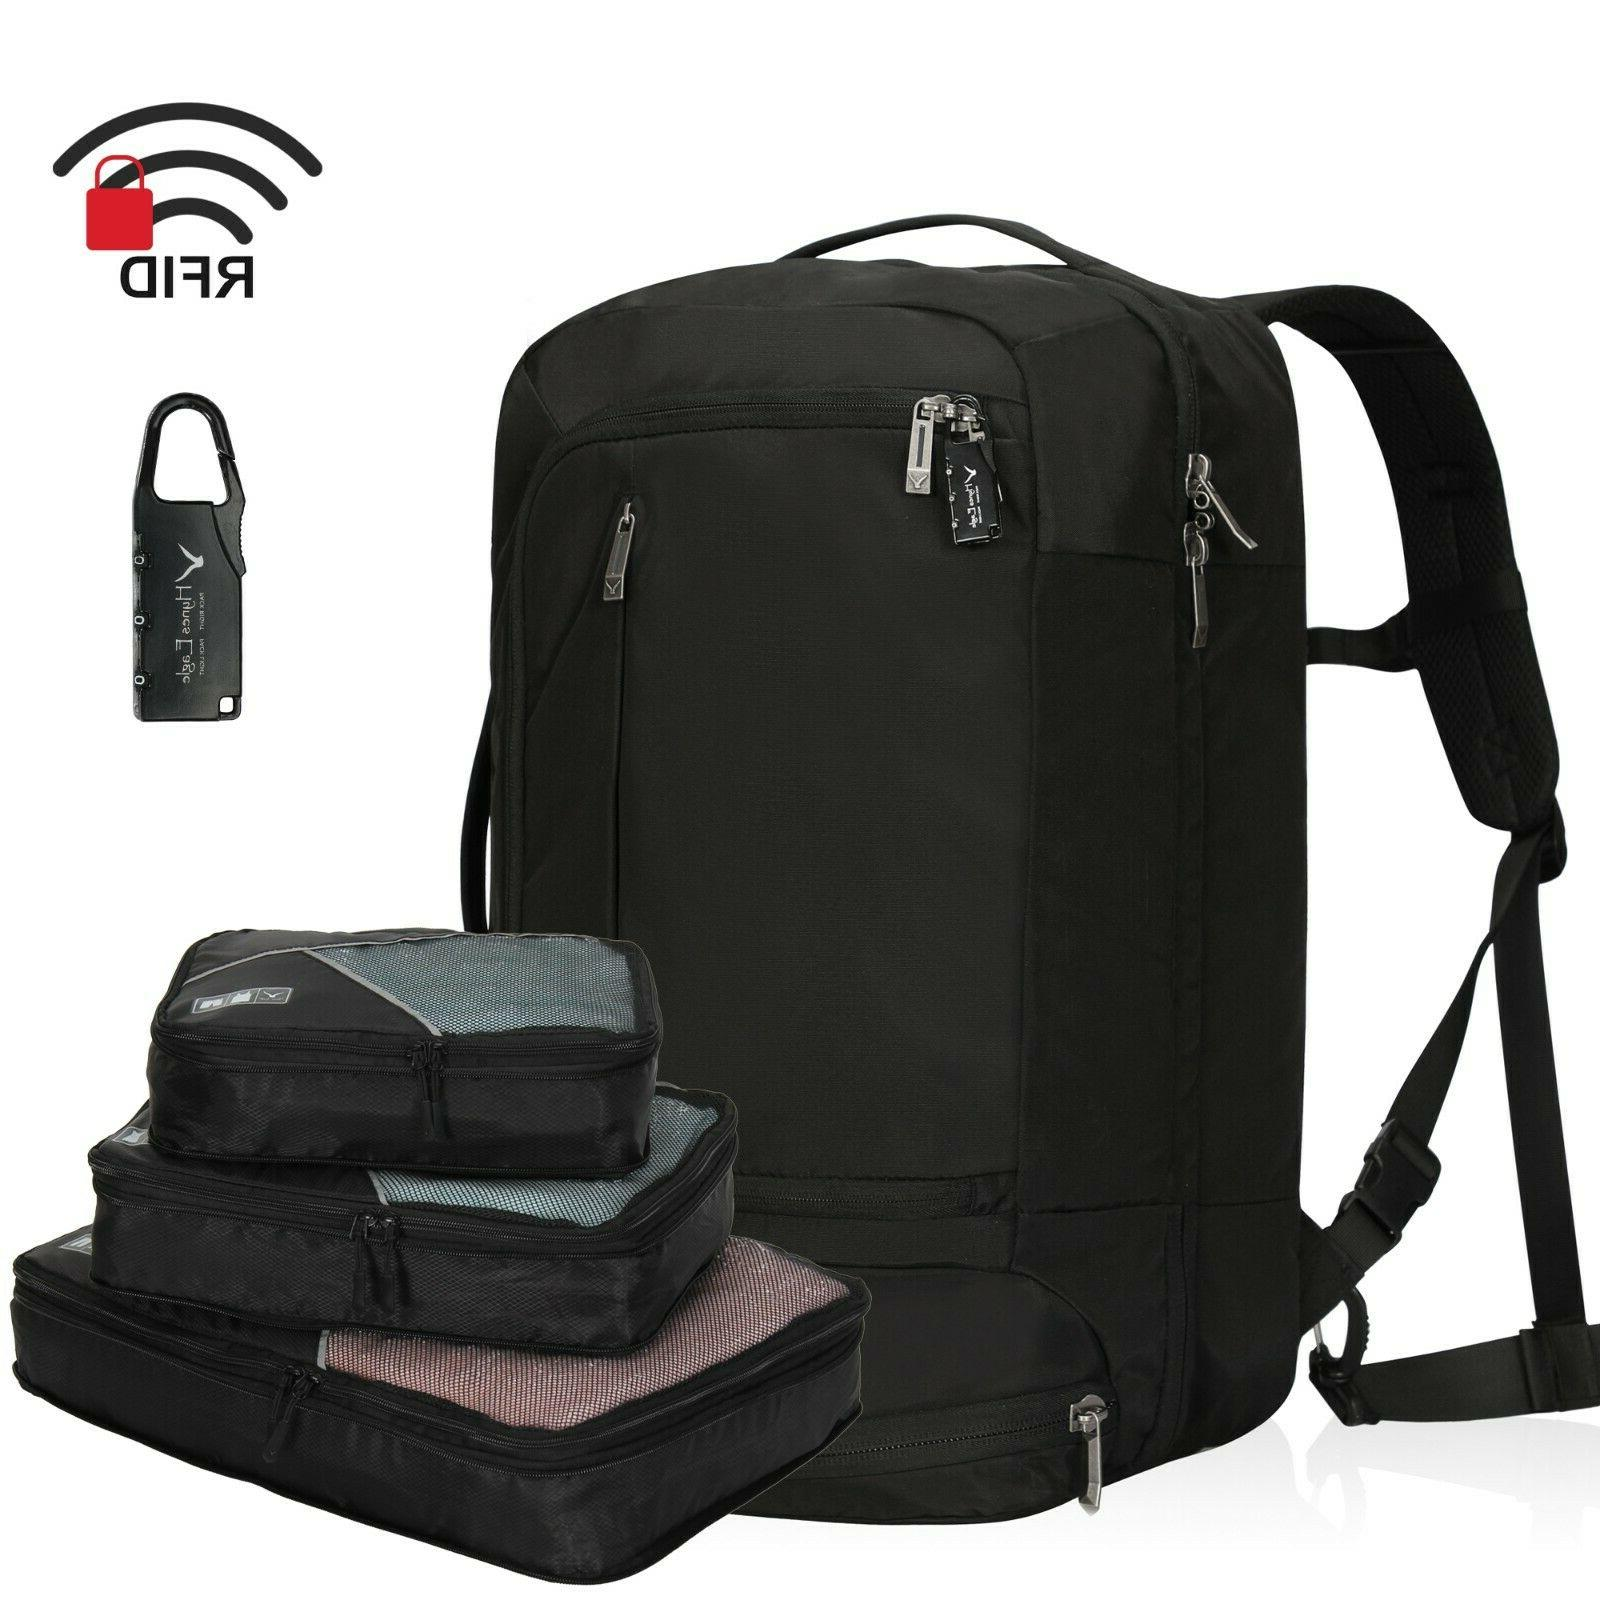 42l carry on backpack cabin approved suitcase